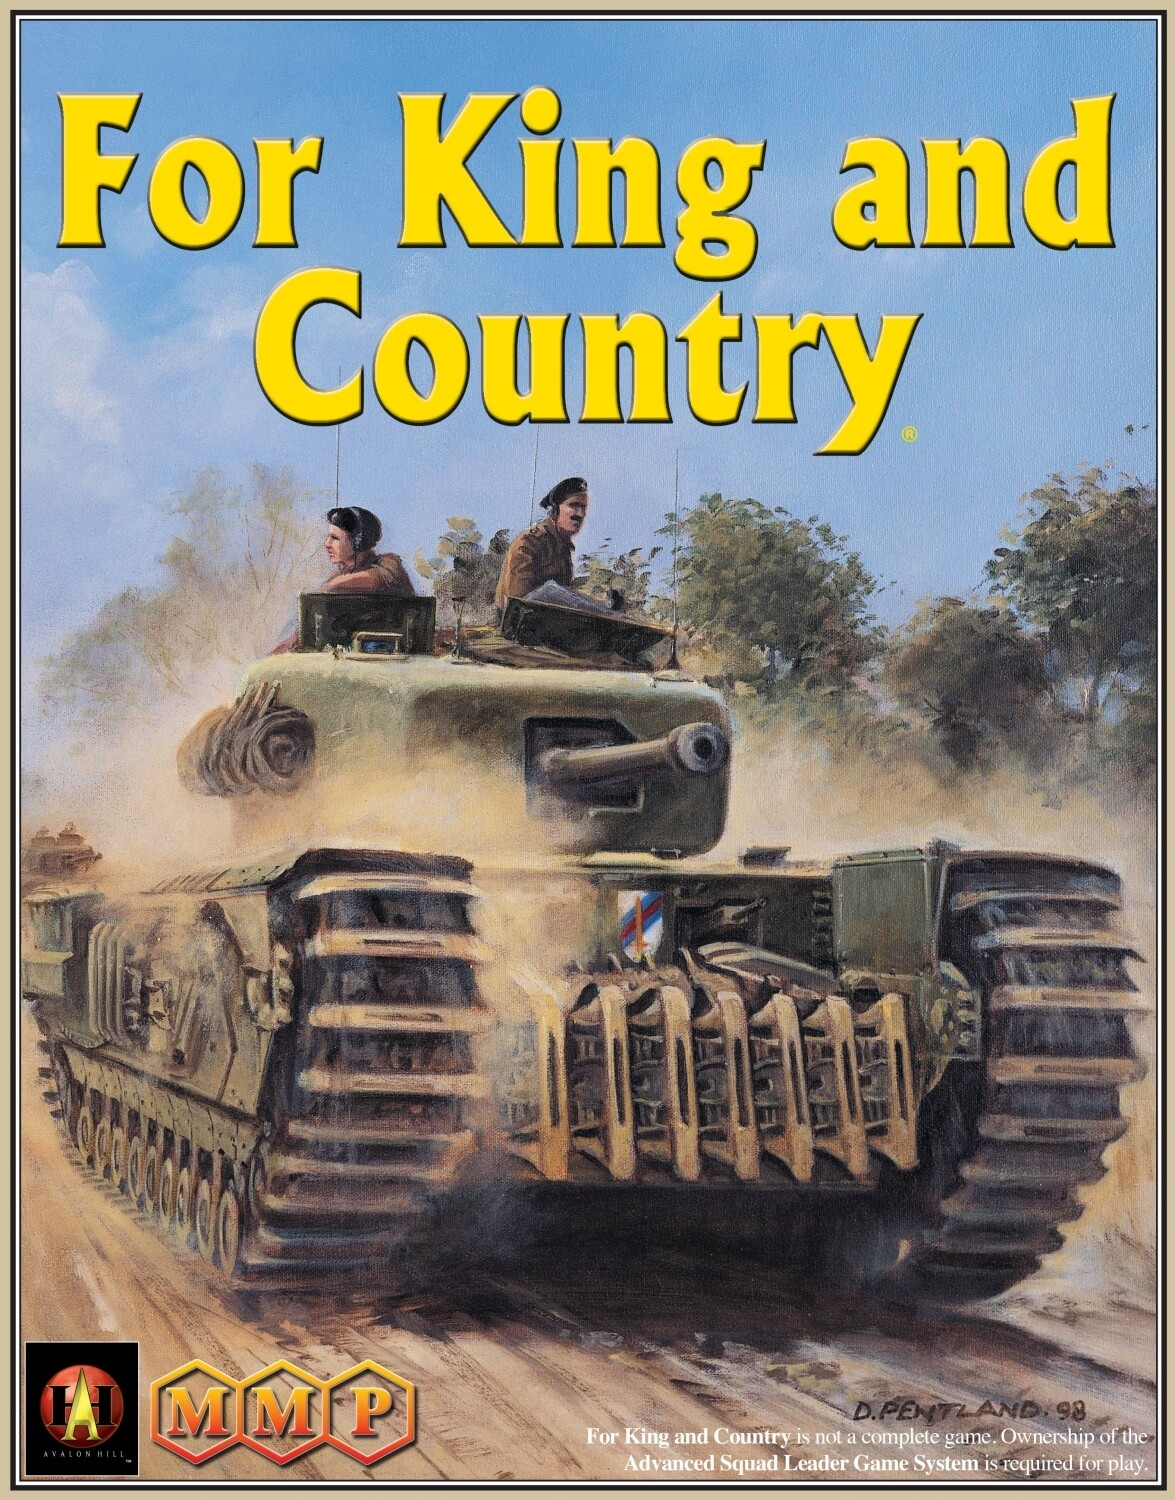 Advanced Squad Leader: ASL Module 5a - For King and Country